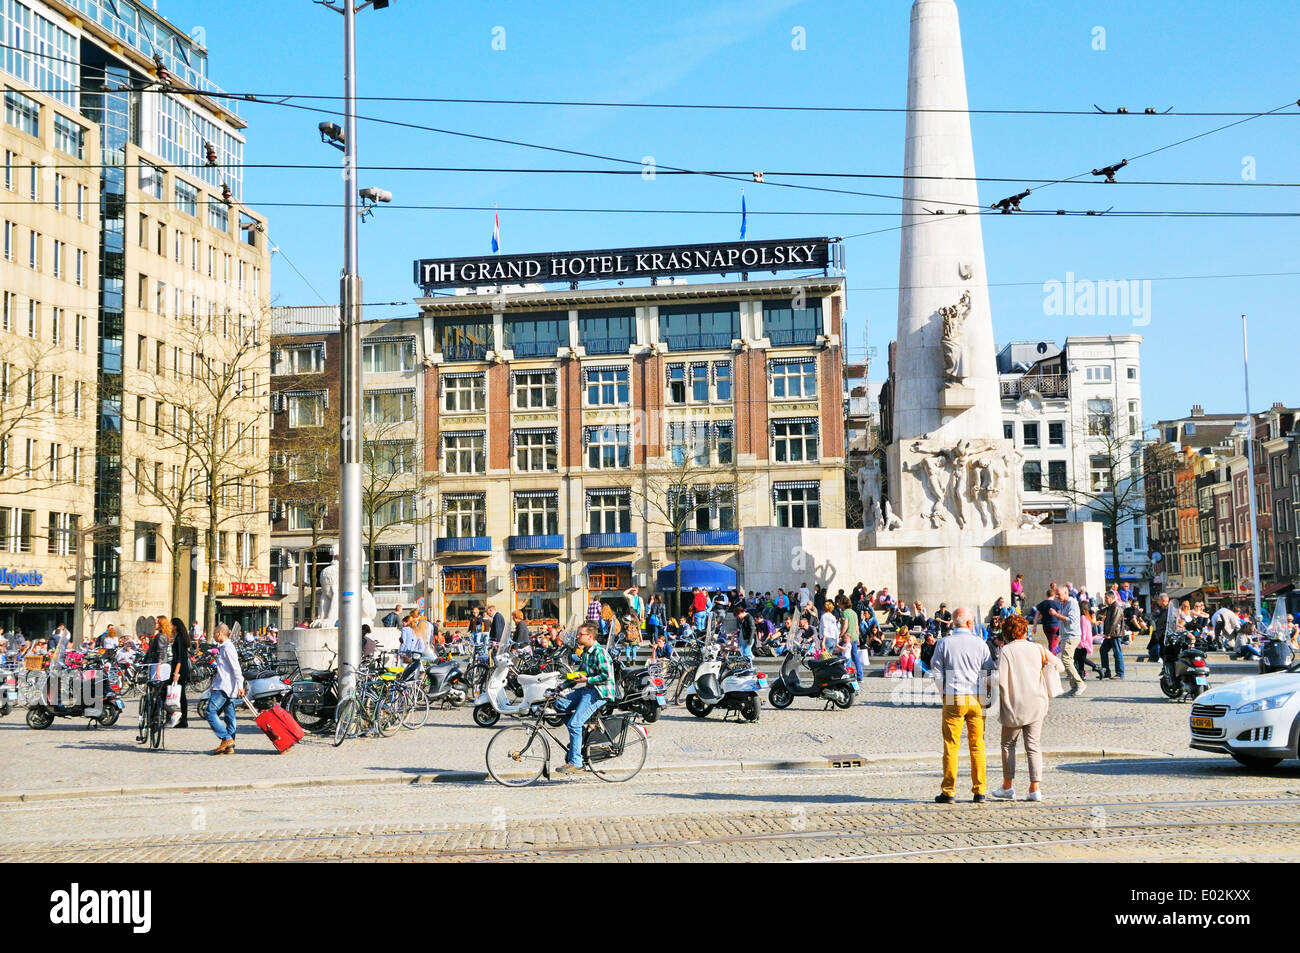 People relaxing in Dam Square outside NH Grand Hotel Krasnapolsky, Amsterdam, Netherlands - Stock Image